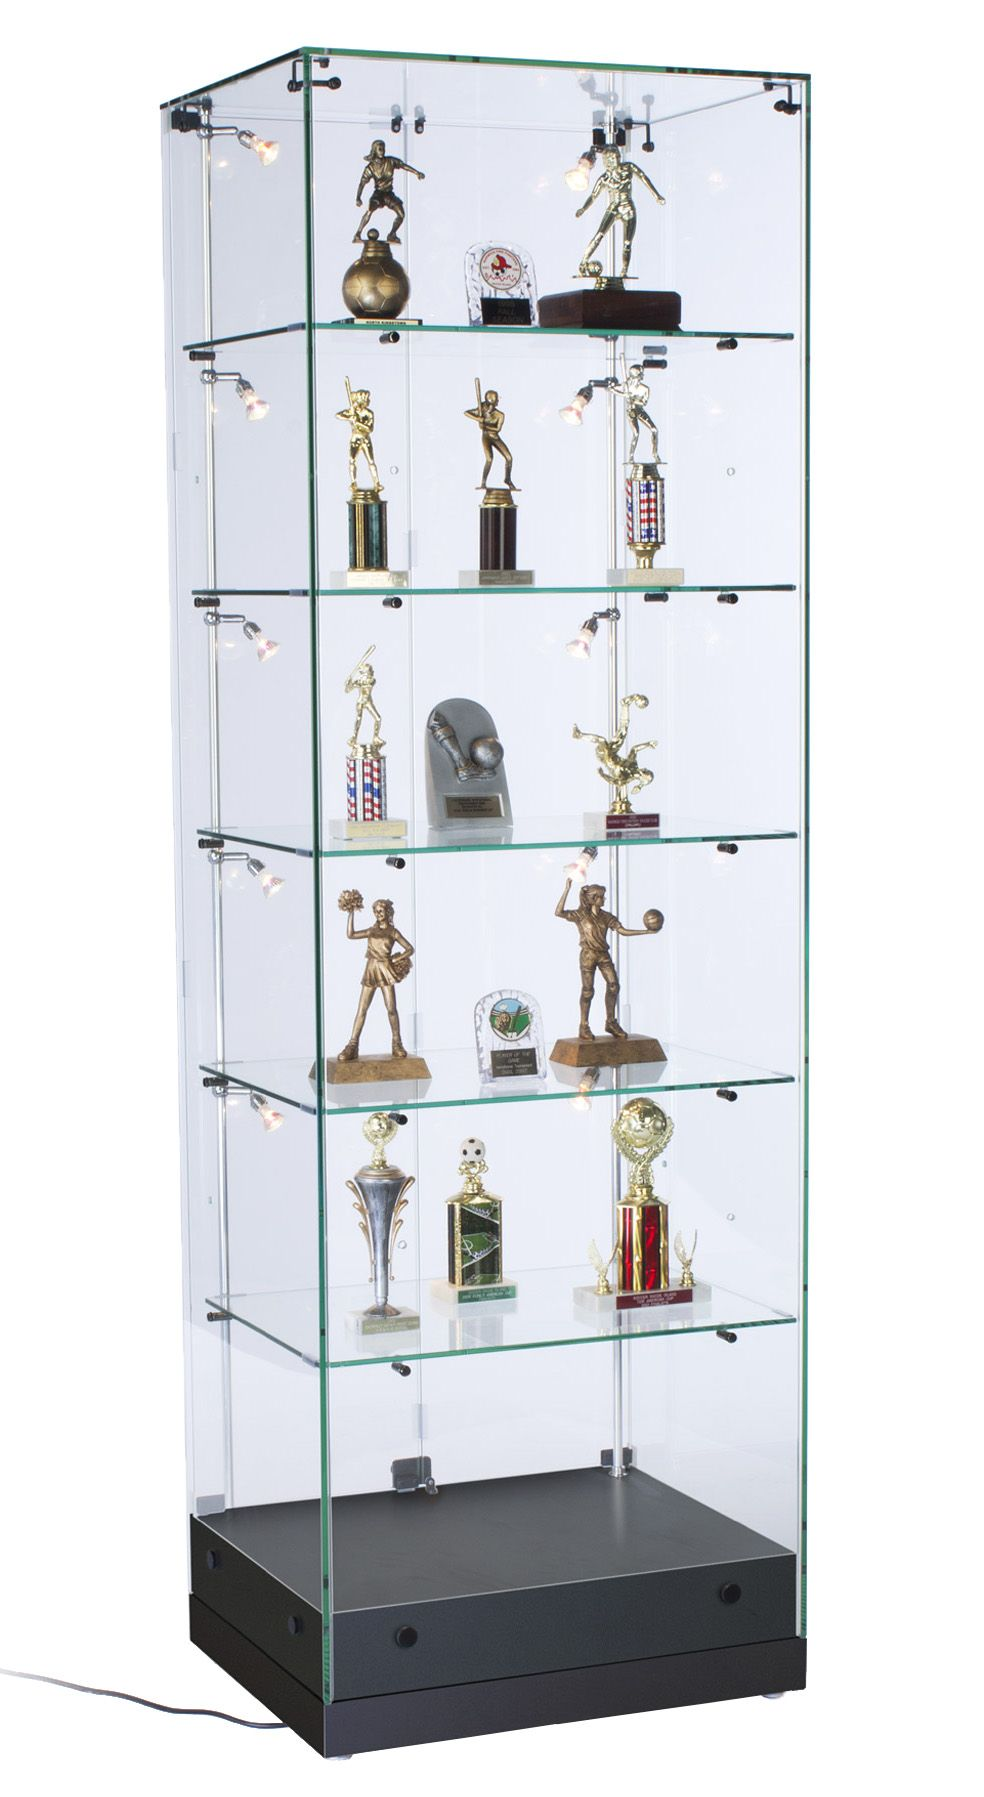 24 Glass Display Case W Led Lights Hinged Door Frameless Ships Assembled Black Glass Display Shelves Glass Showcase Glass Display Case Glass display case with lights